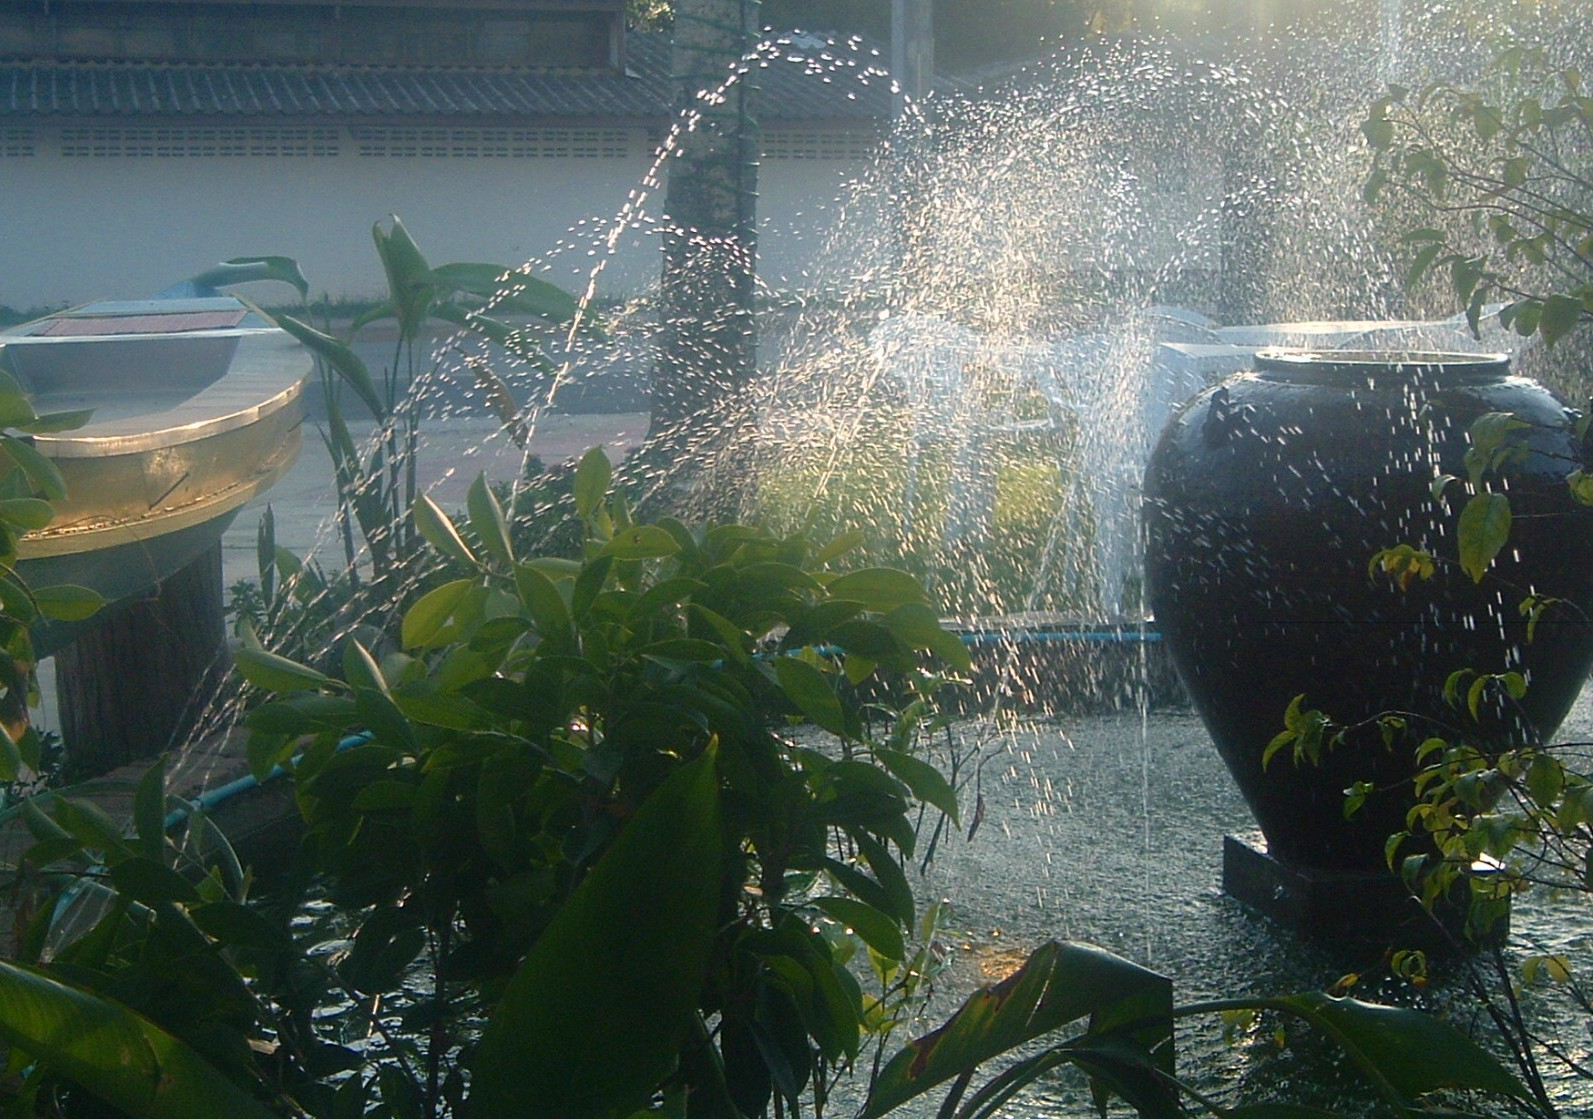 fountain hata kata.JPG